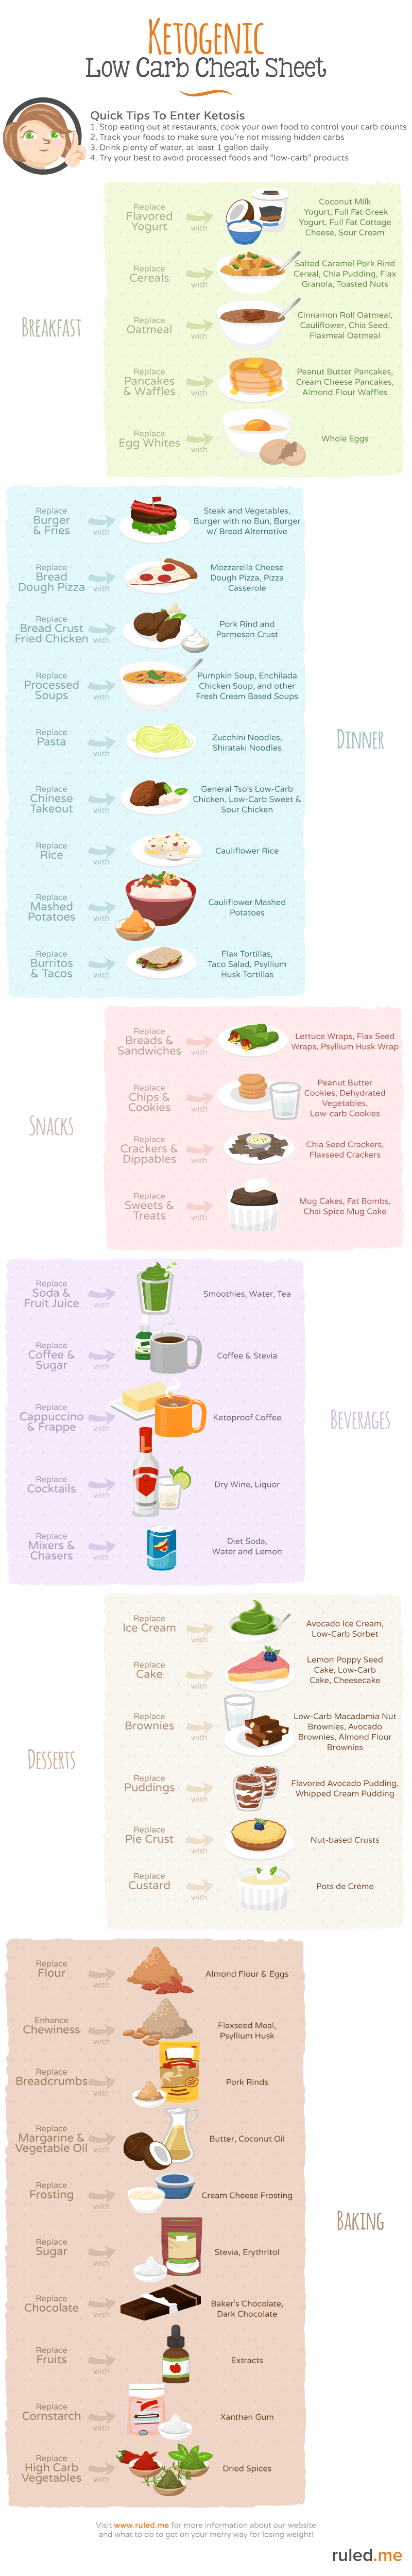 low carb and low sugar diet cheat sheet